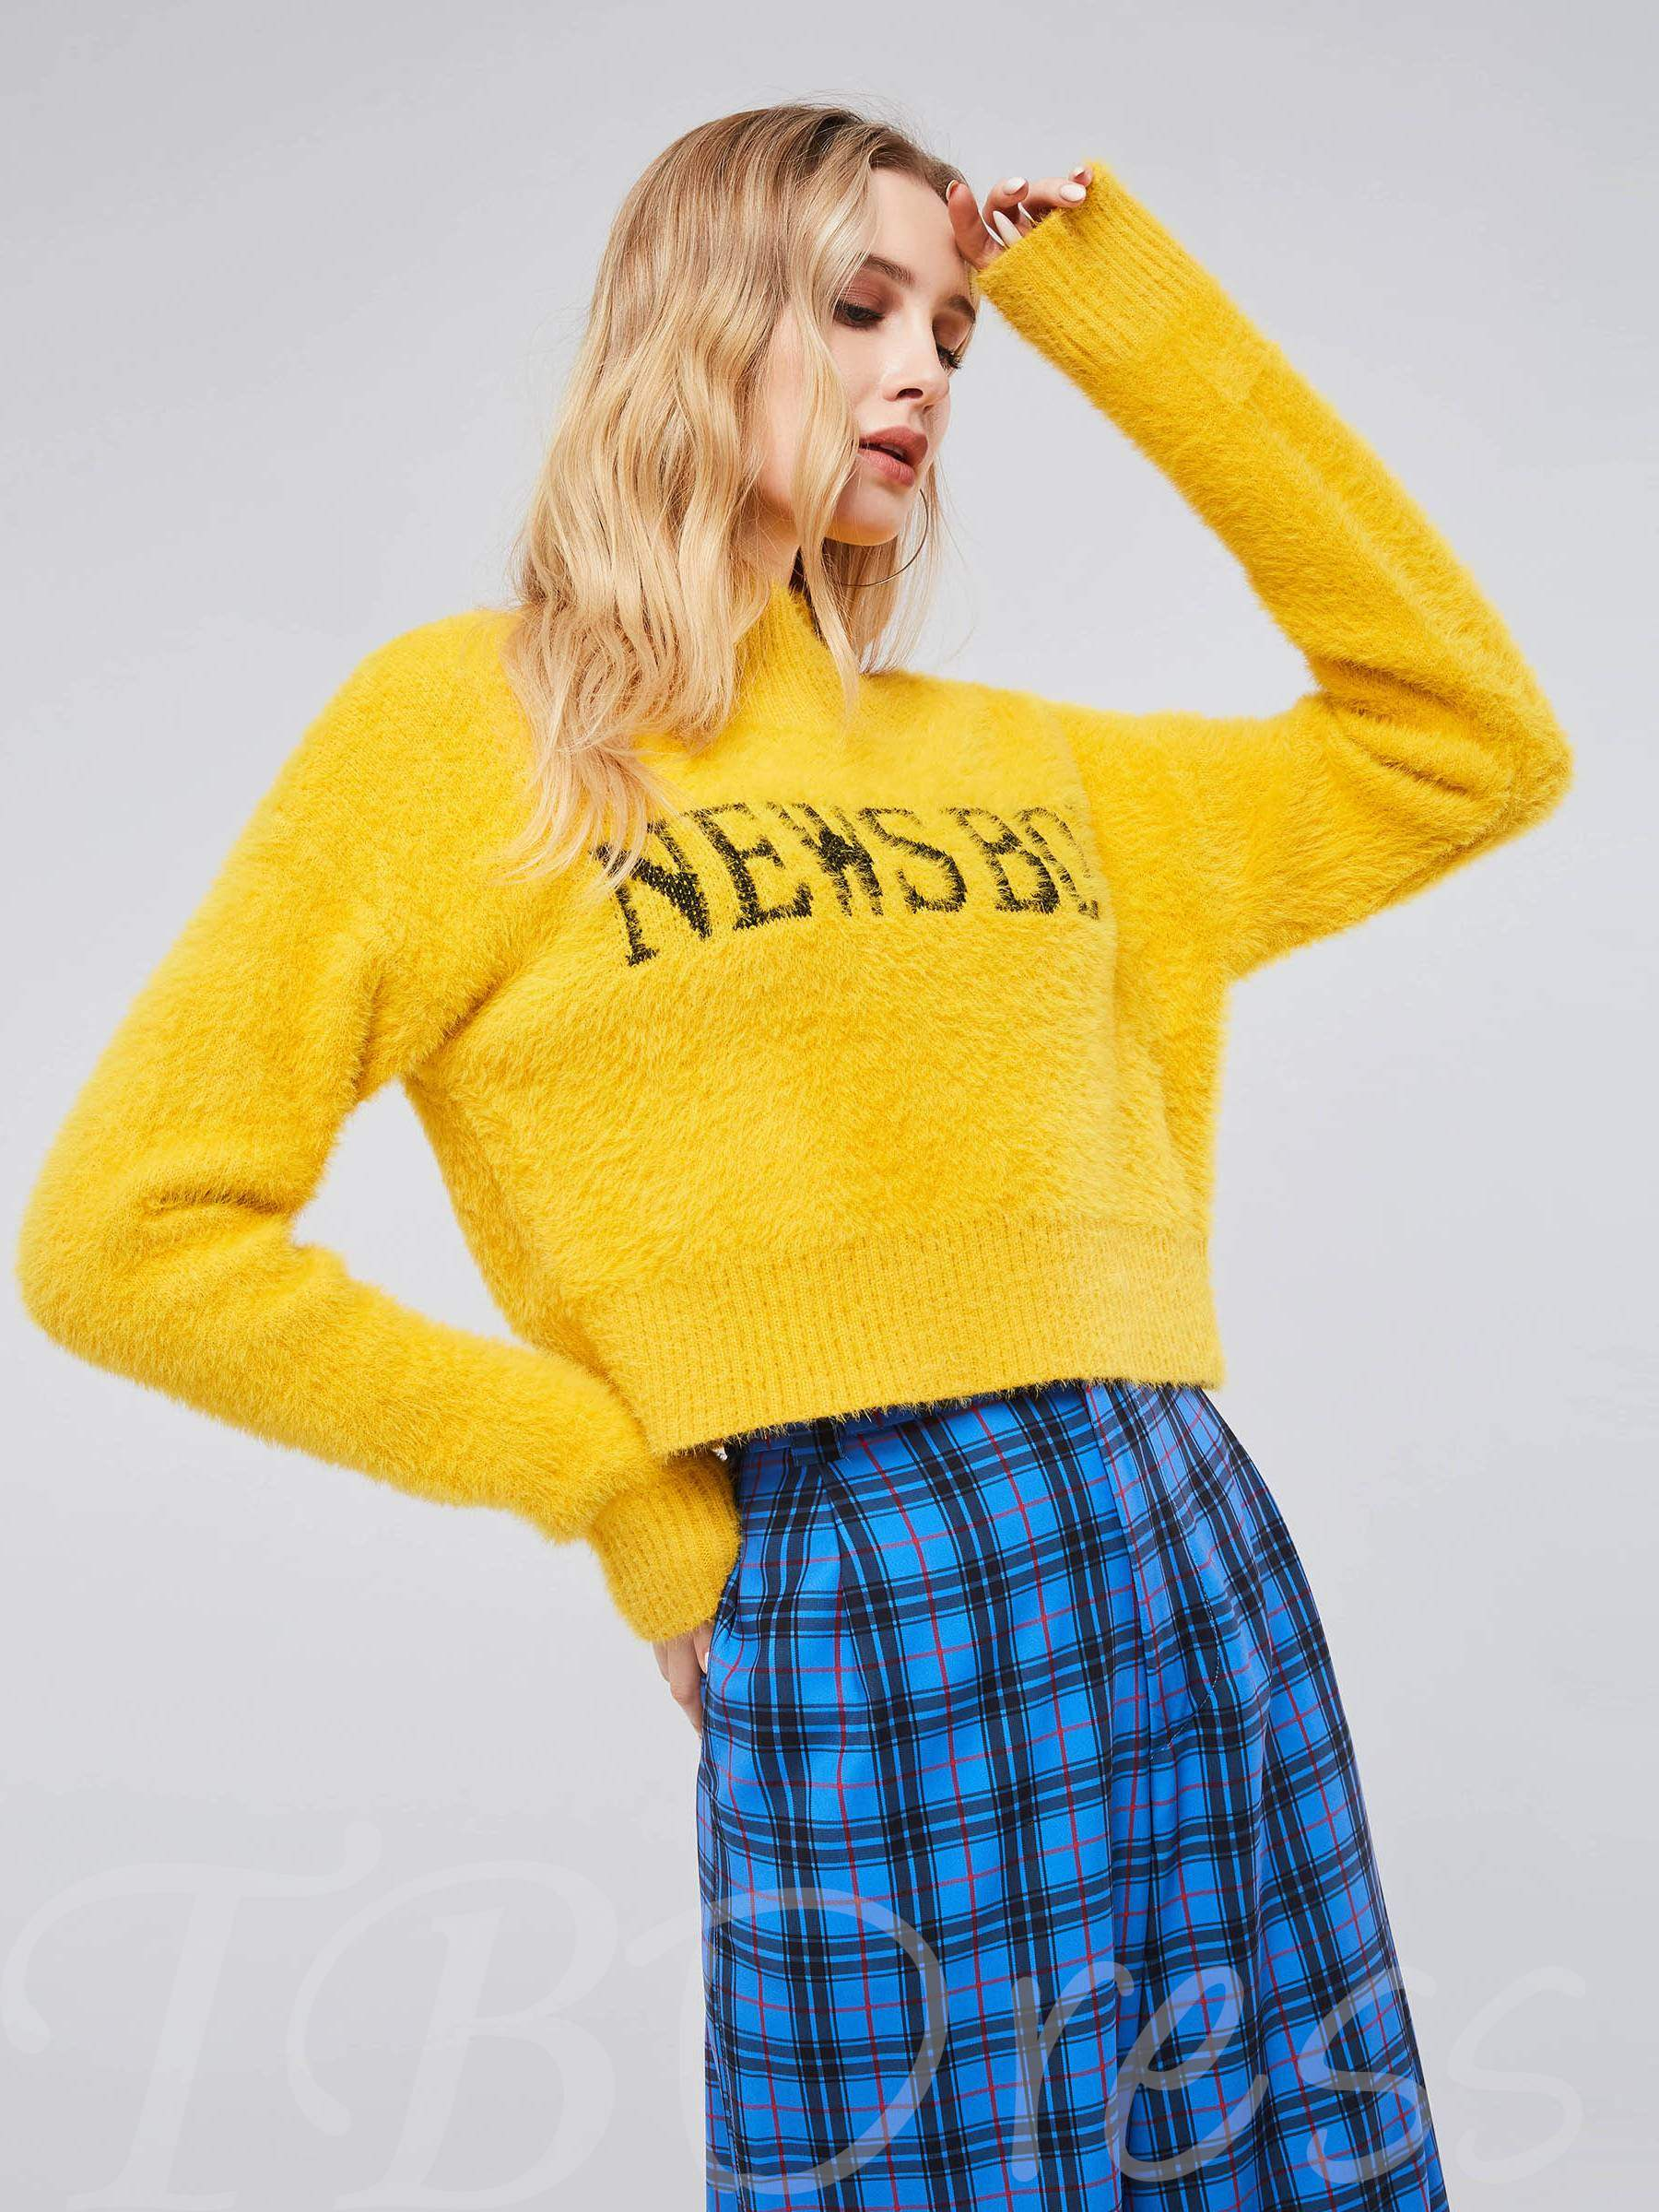 Buy High Neck Letter Print Women's Cropped Sweater, Fall,Winter, 13406298 for $20.59 in TBDress store